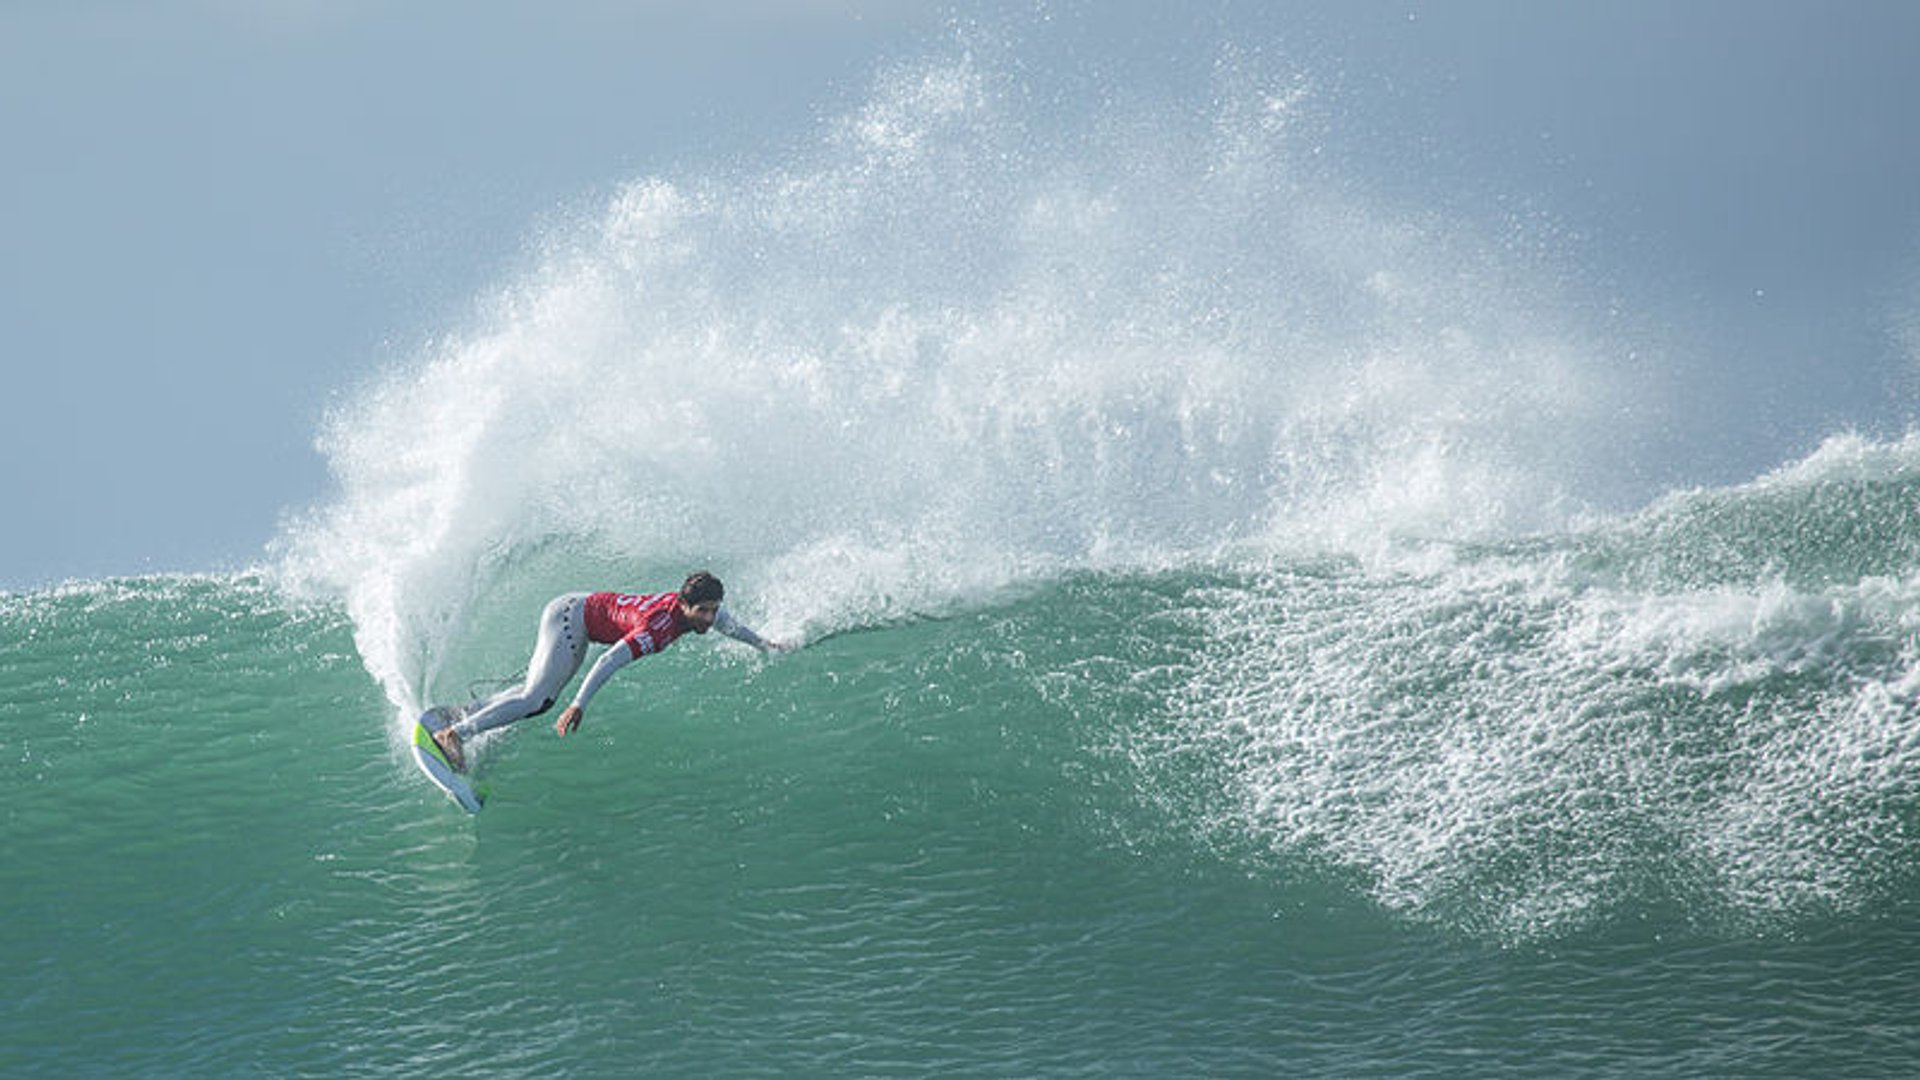 J-Bay Open in South Africa 2020 - Best Time